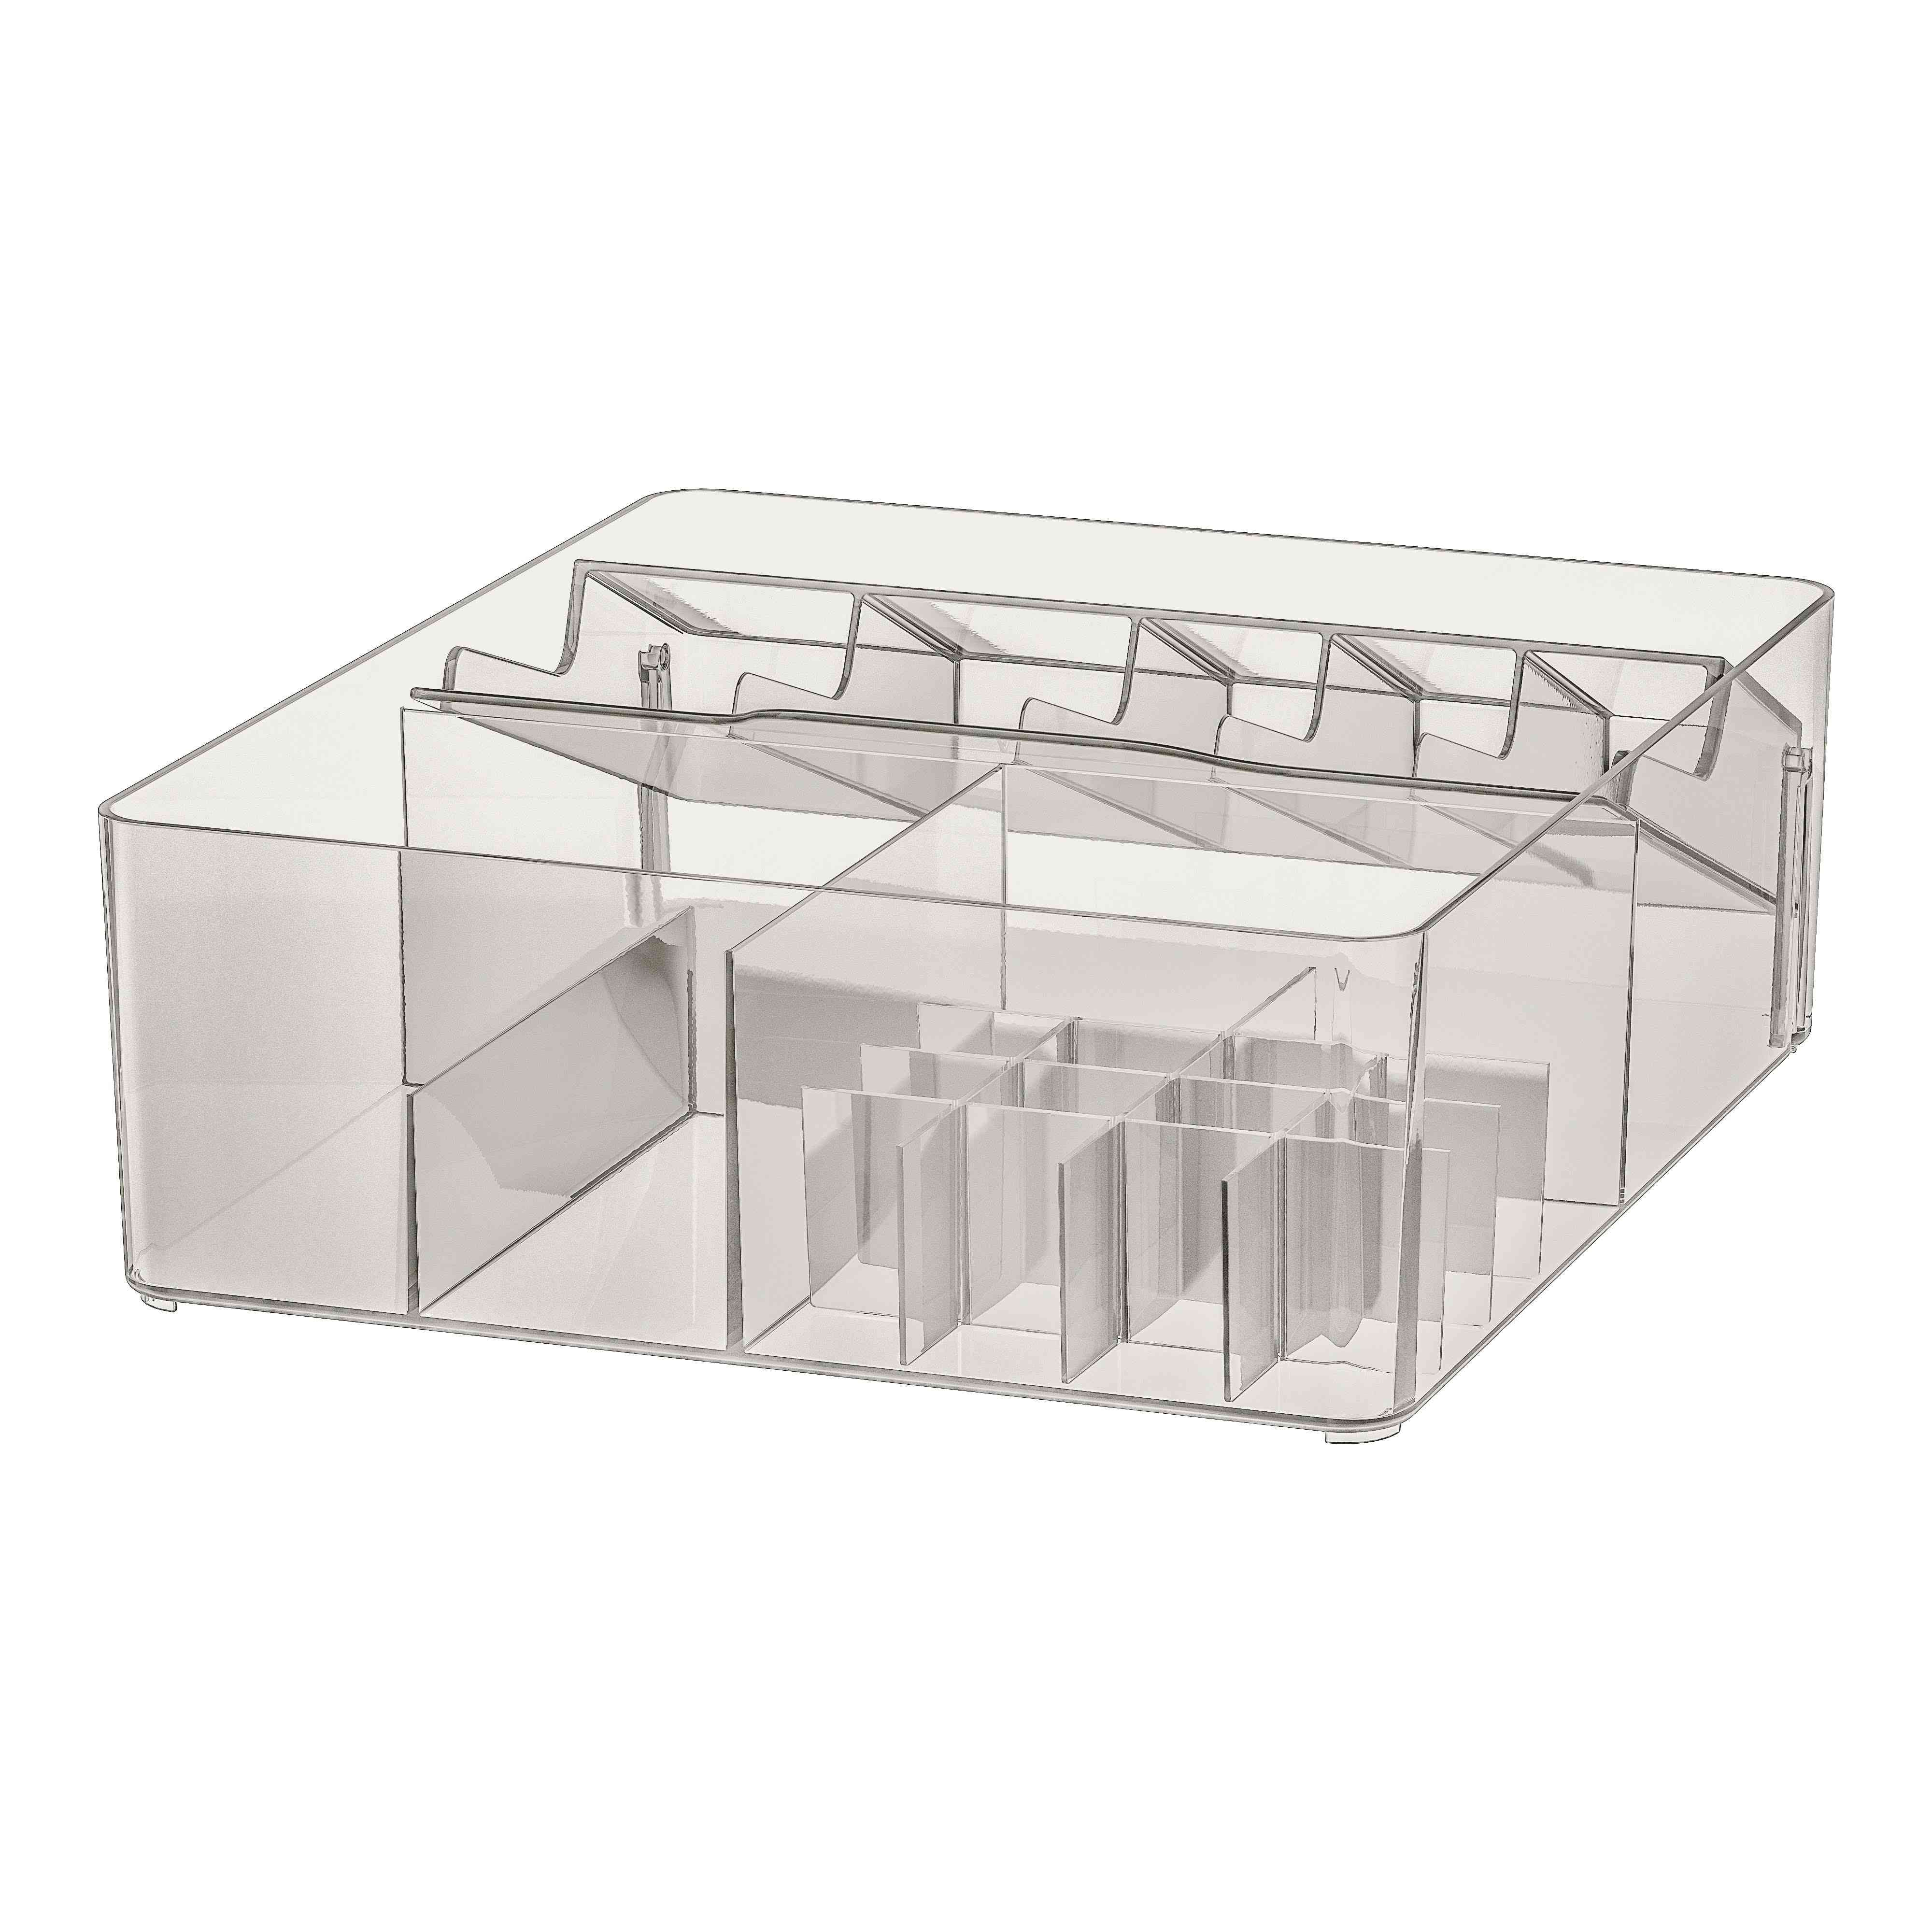 IKEA GODMORGON Box With Compartments, Smoked